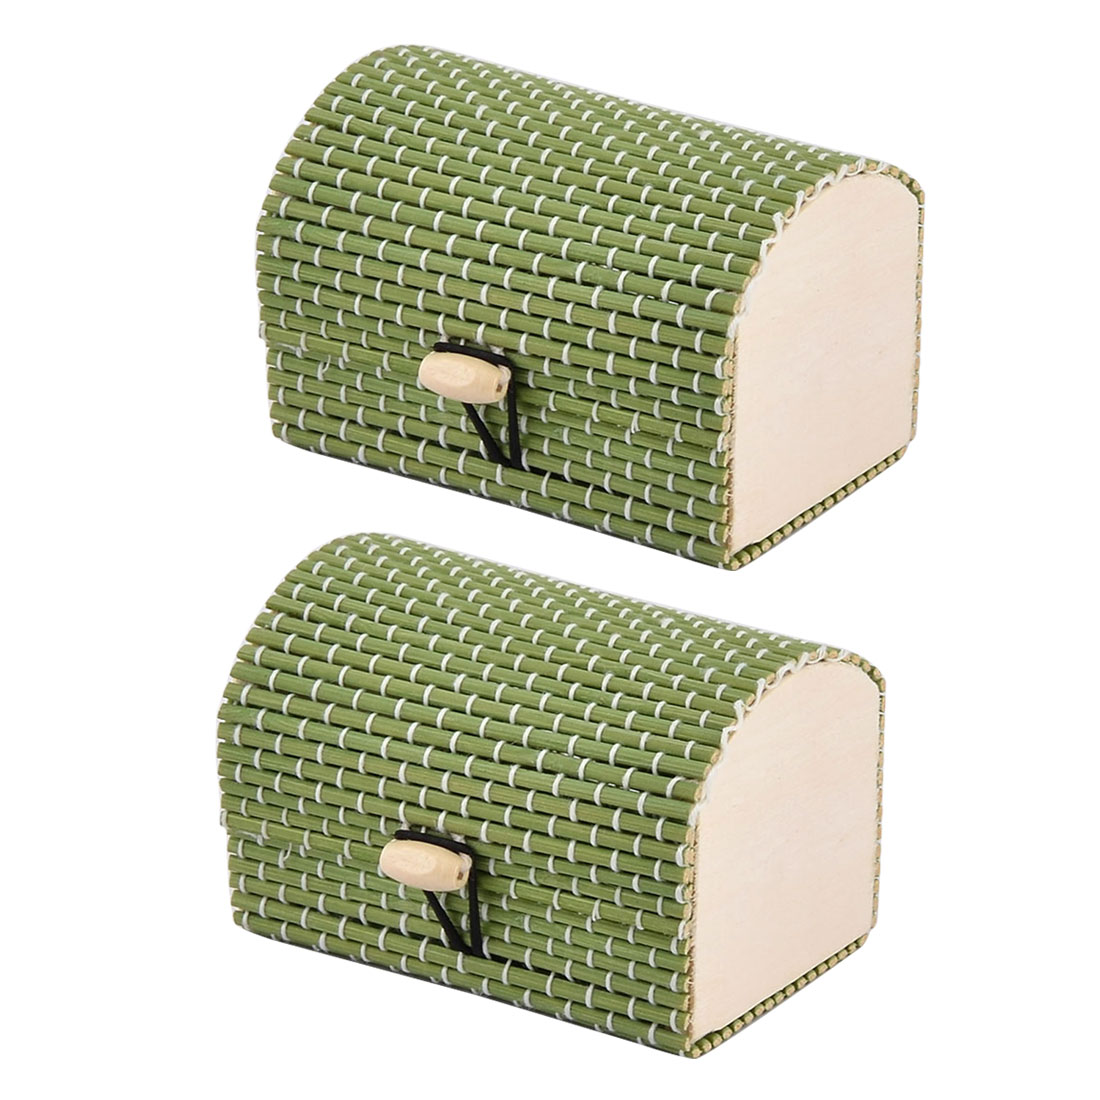 Bamboo Handmade Gift Storage Box Jewelry Necklace Ornament Organizer Green 2 PCS